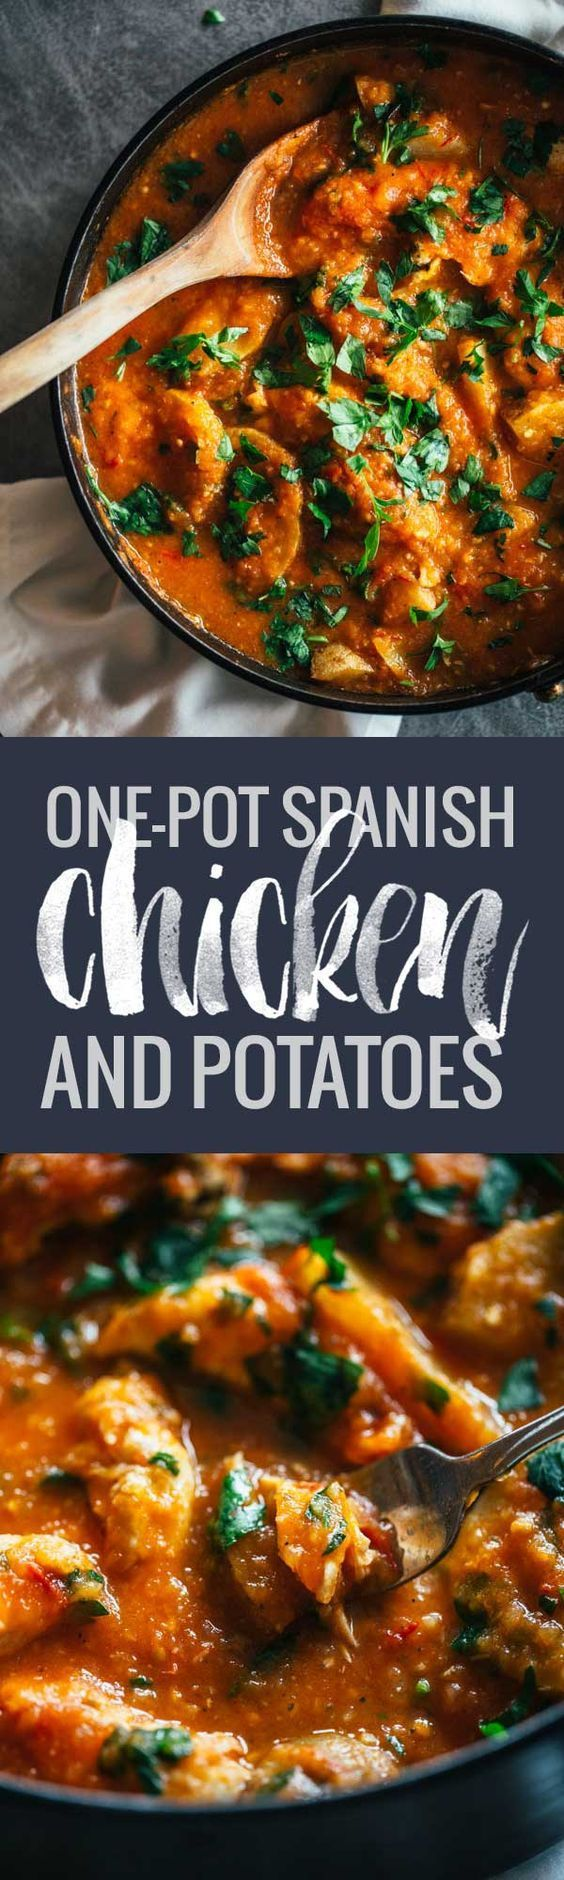 One Pot Spanish Chicken and Potatoes - a vibrant, comforting meal with simple flavors. 360 calories.